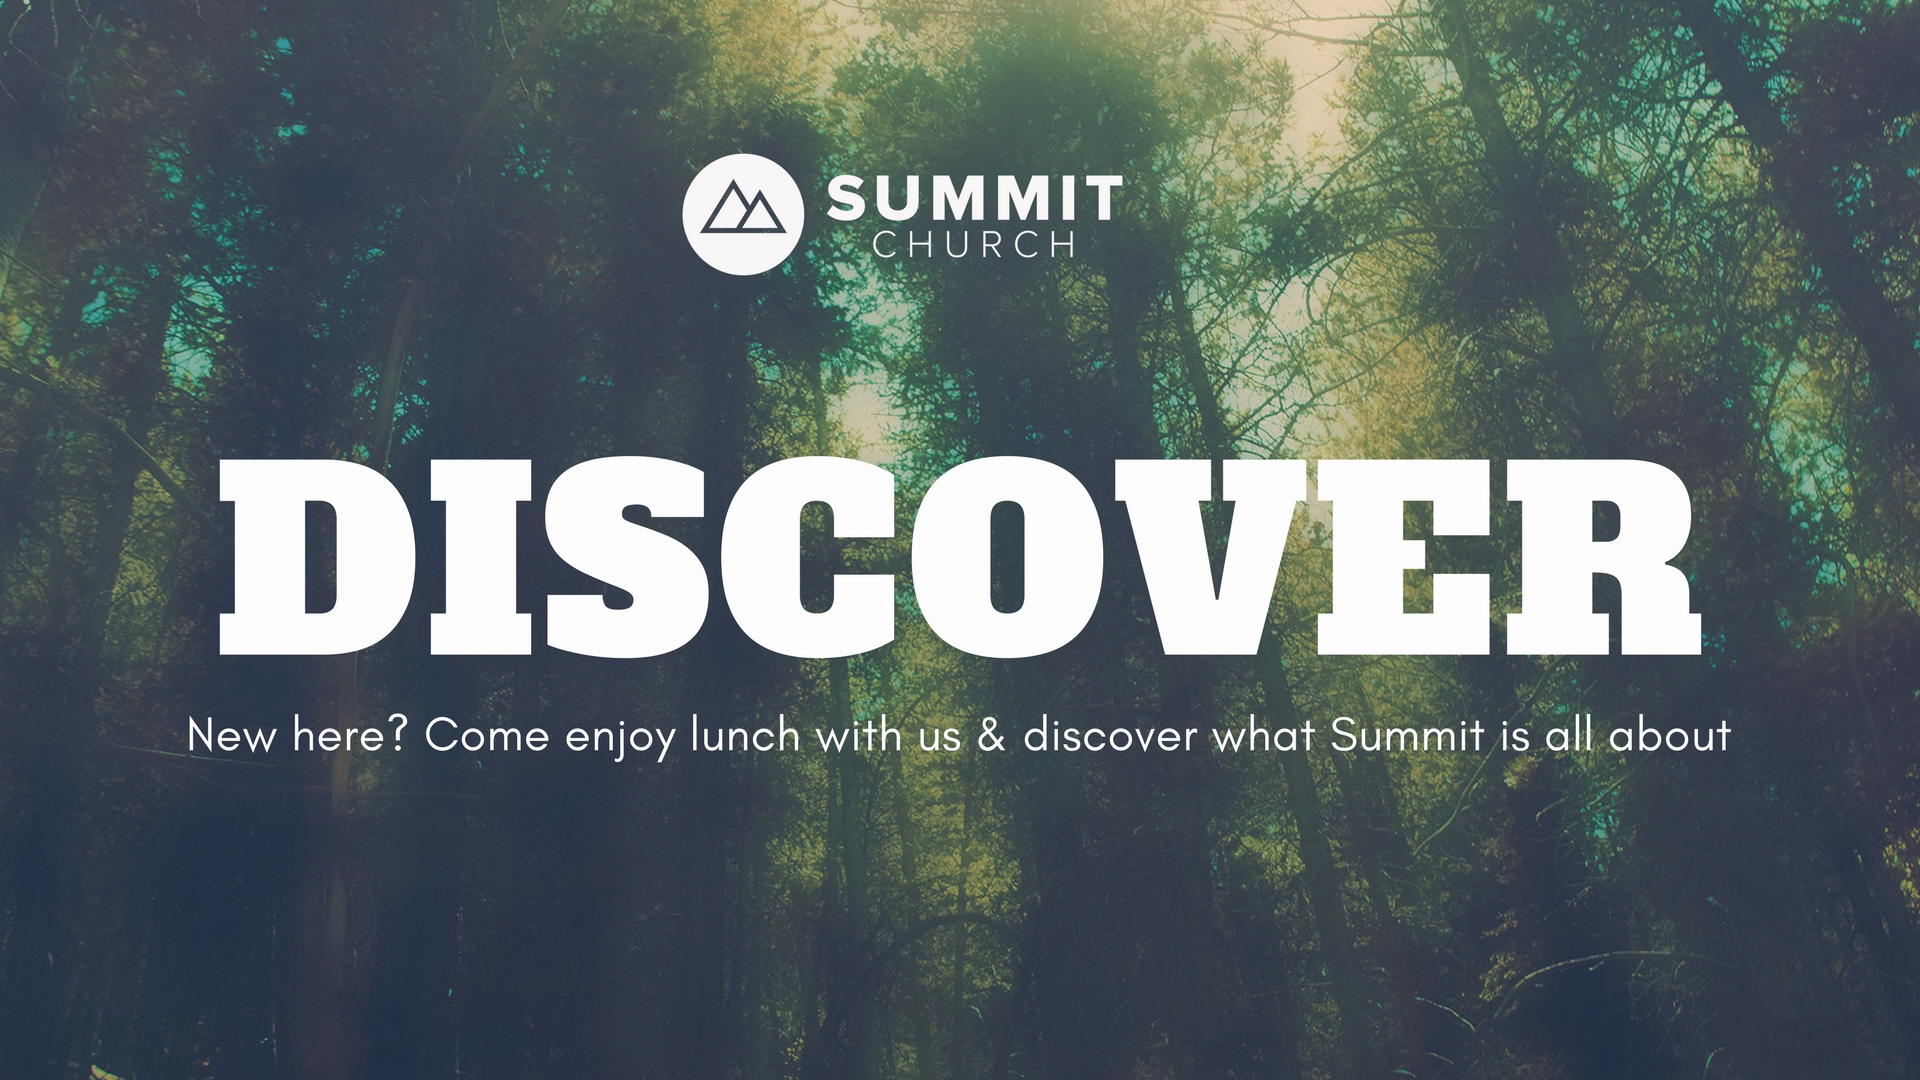 Discover lunch